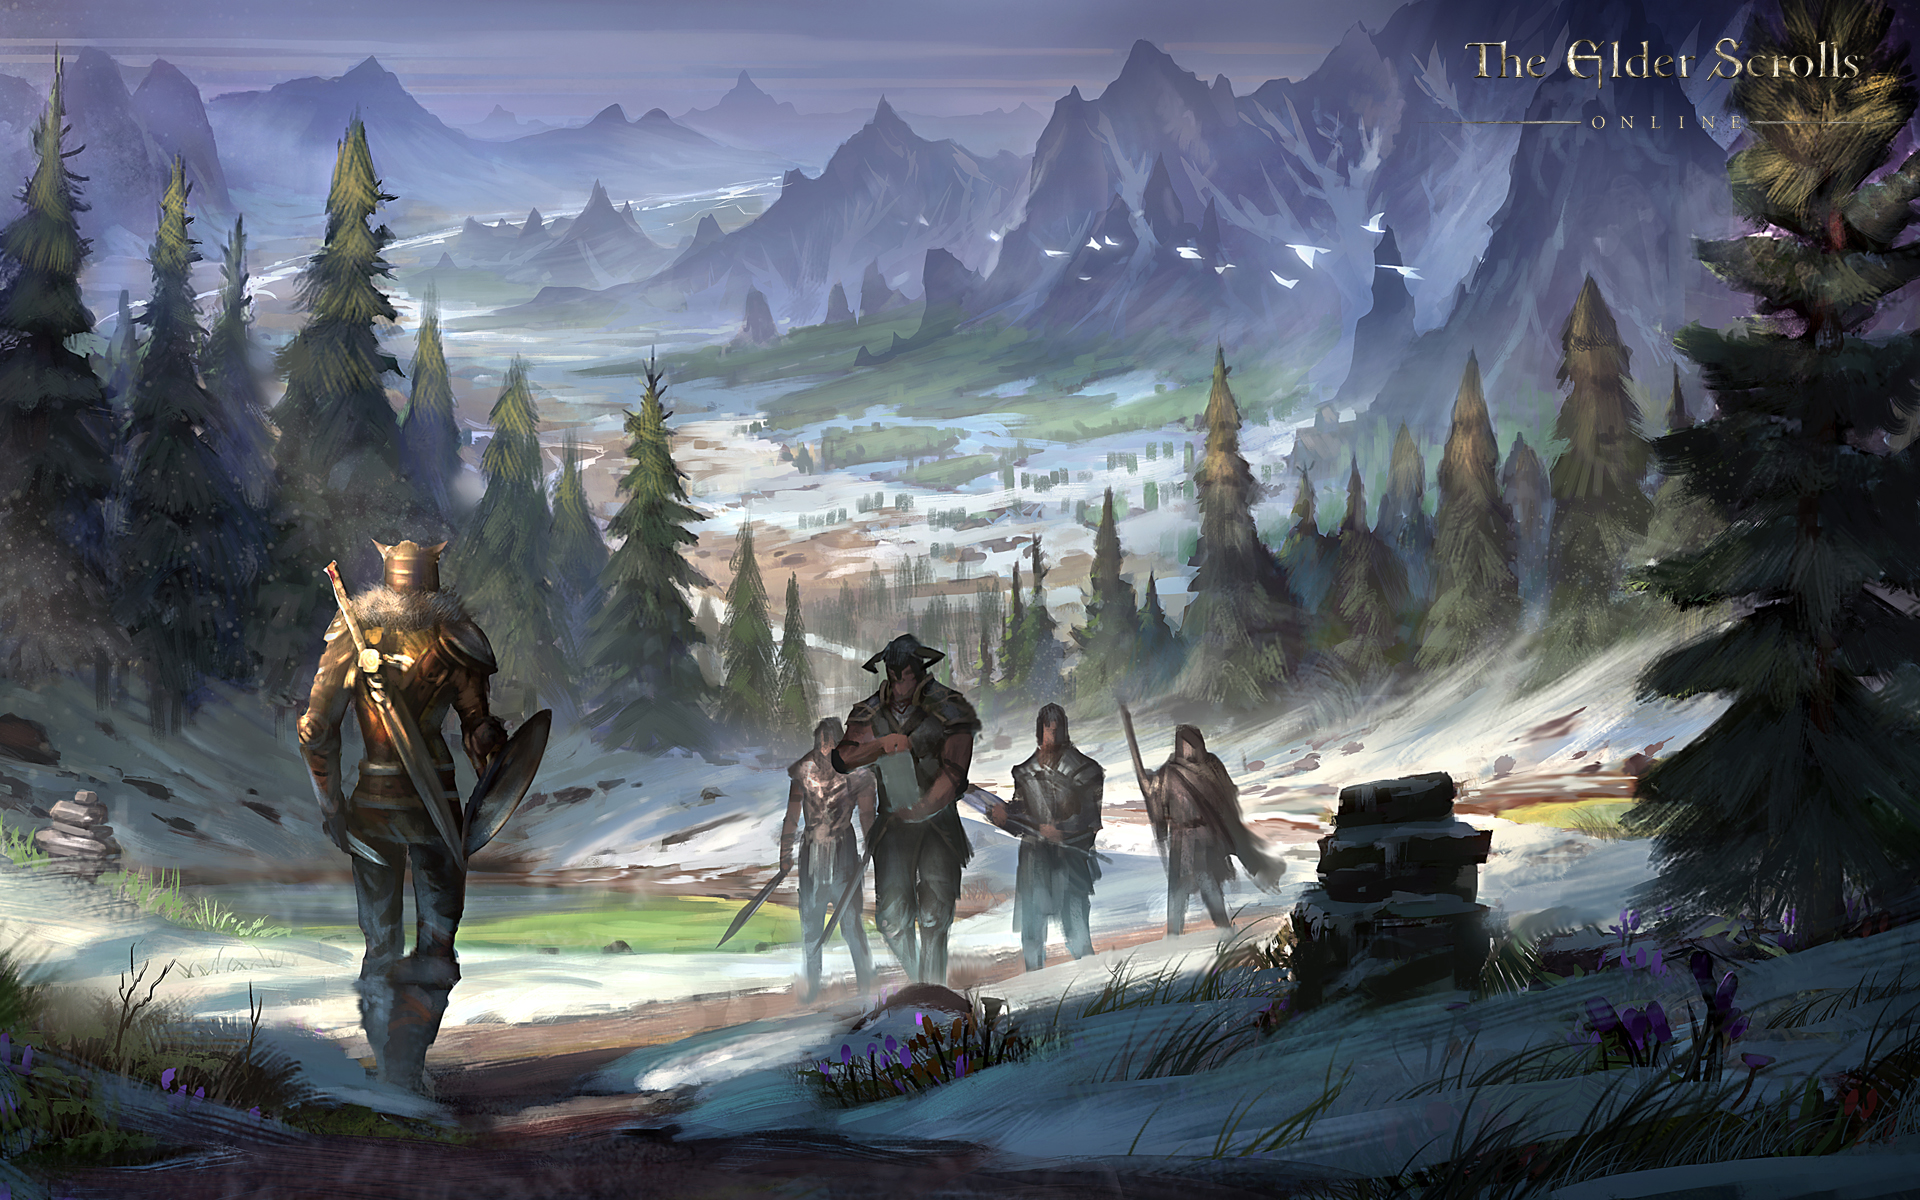 Wallpaper The Elder Scrolls Online: Eastmarch